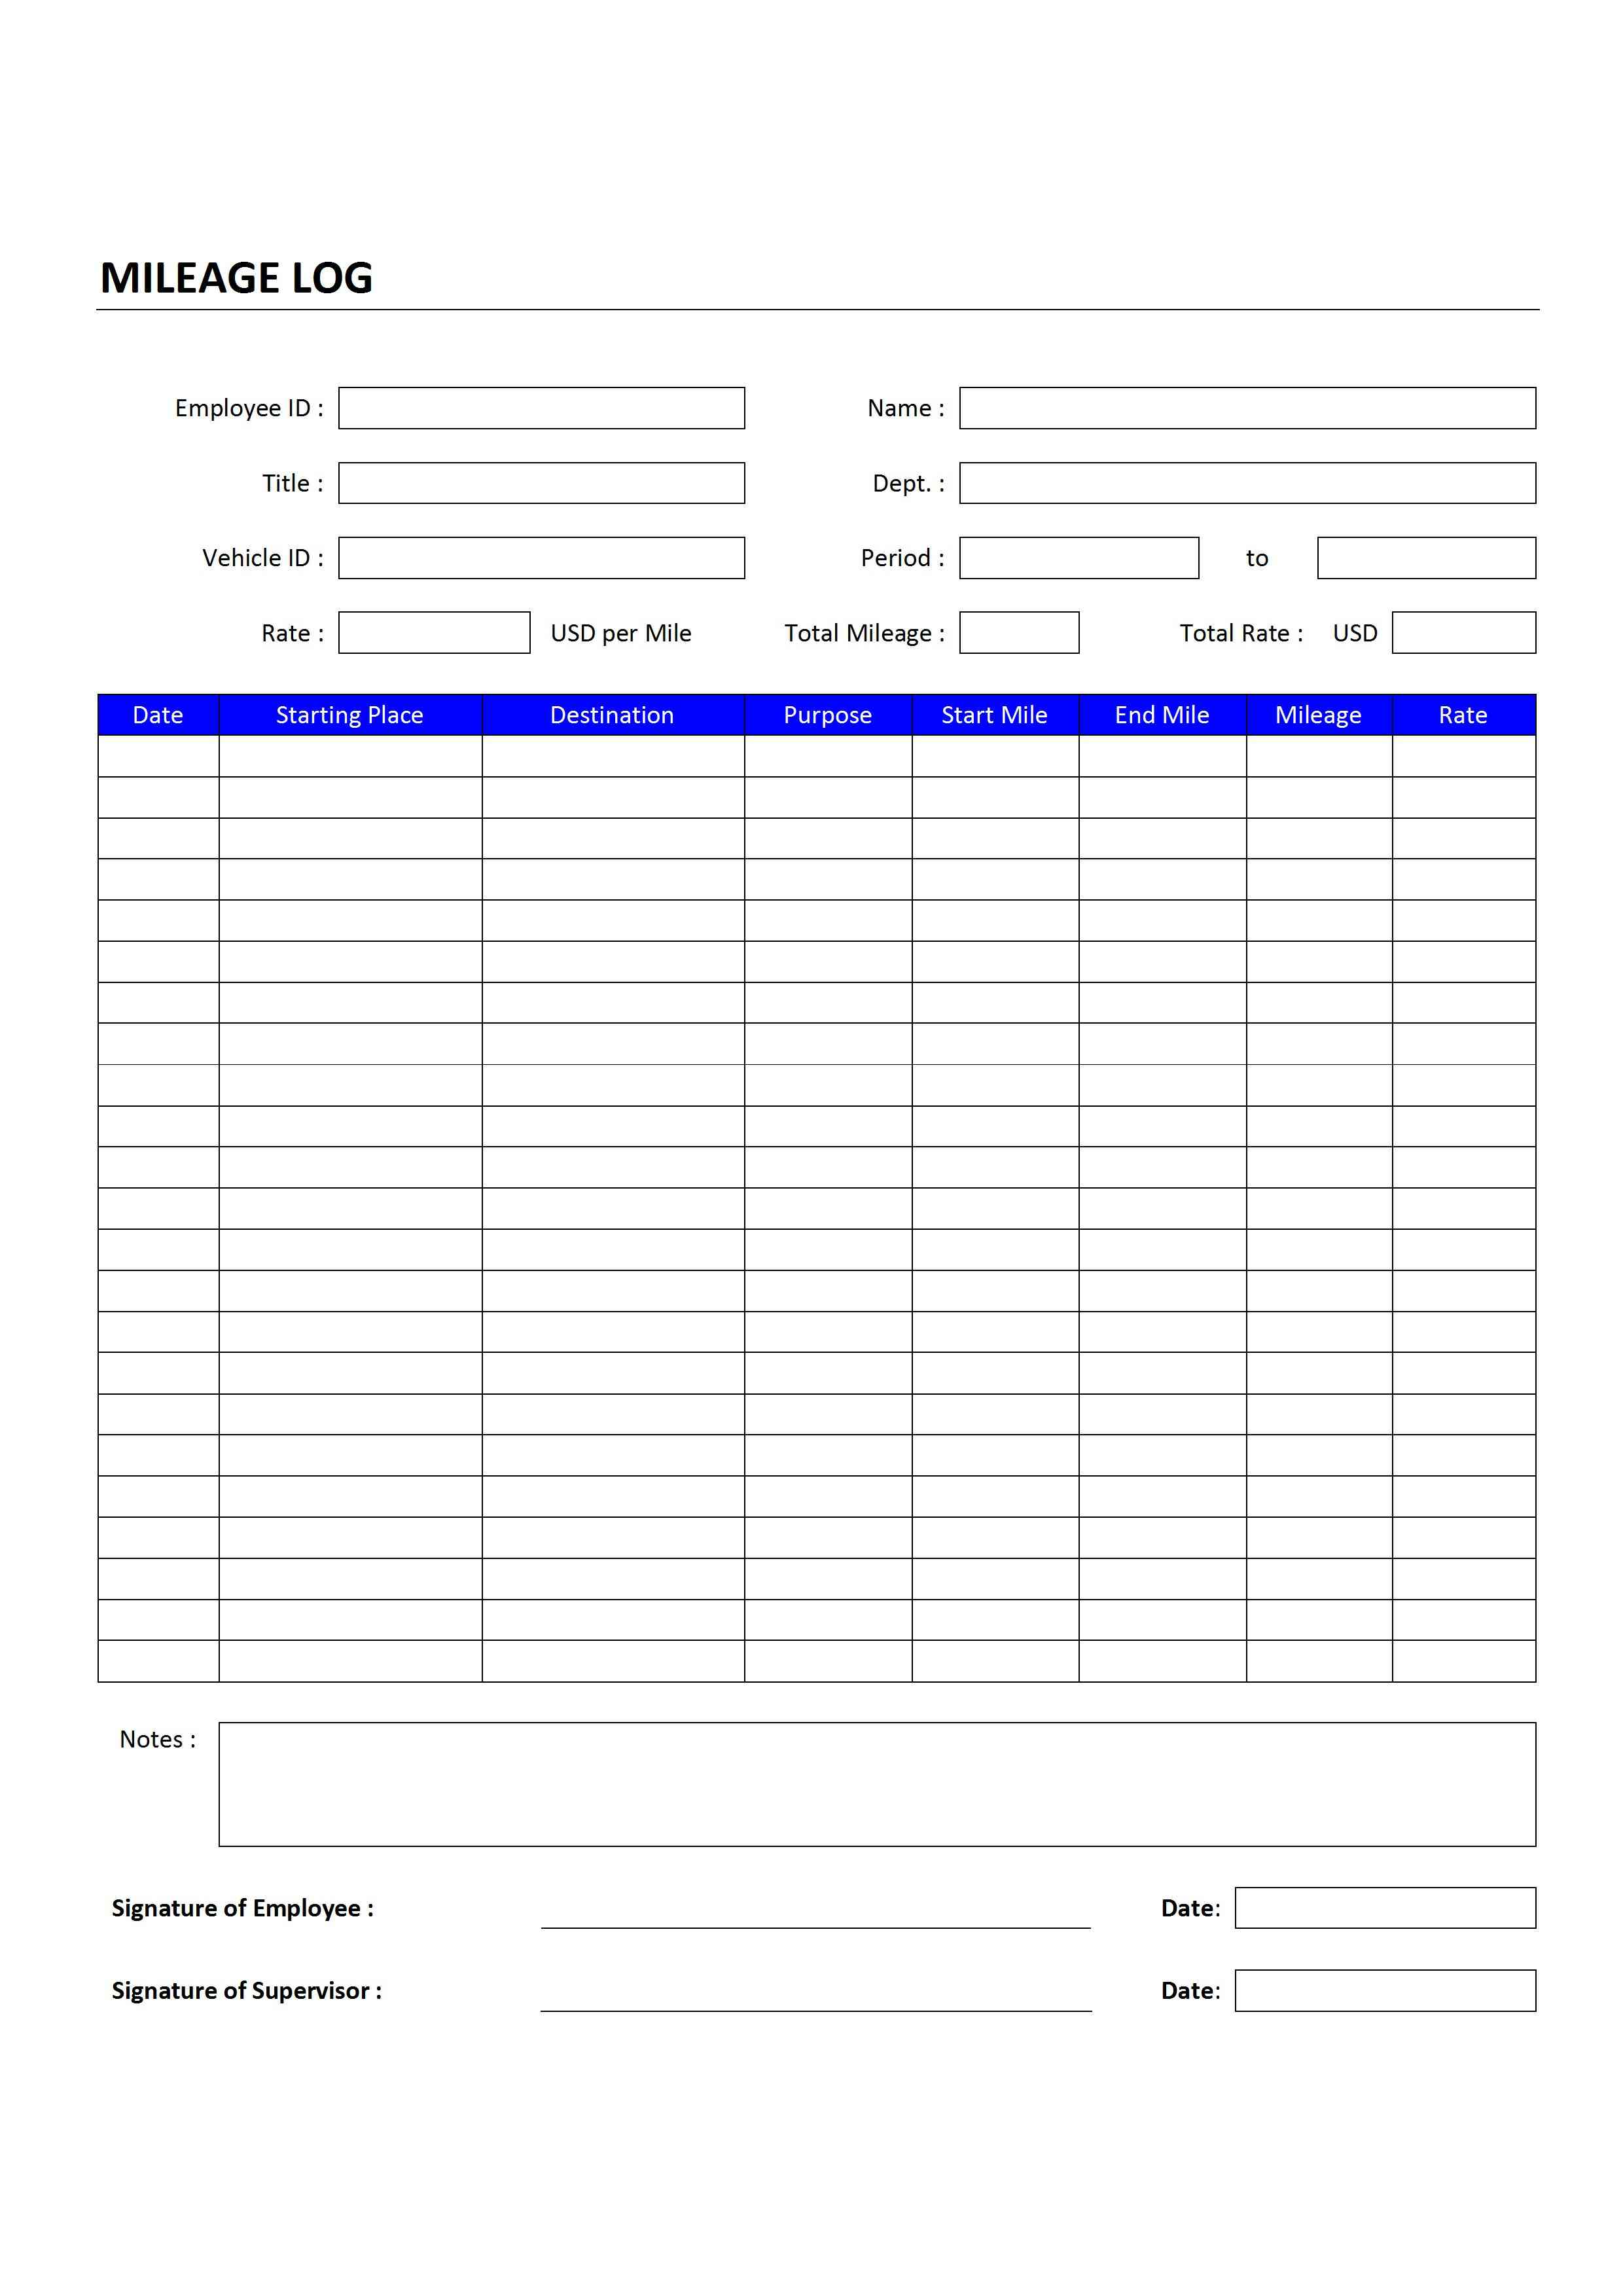 mileage log wordtemplates net mileage log for word